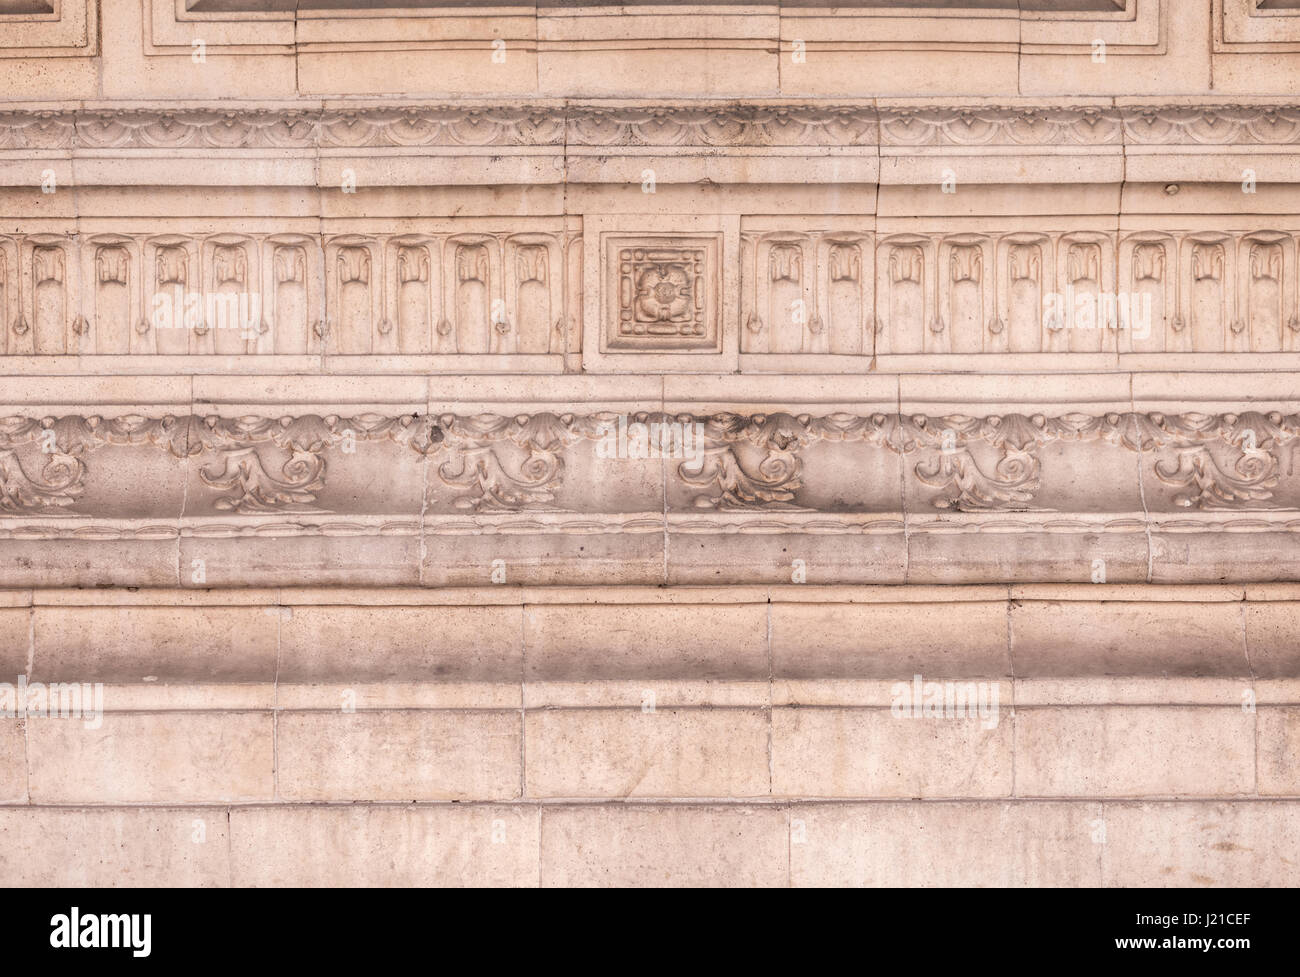 elaborately carved stone molding on the facade of an old building in London, England, UK - Stock Image